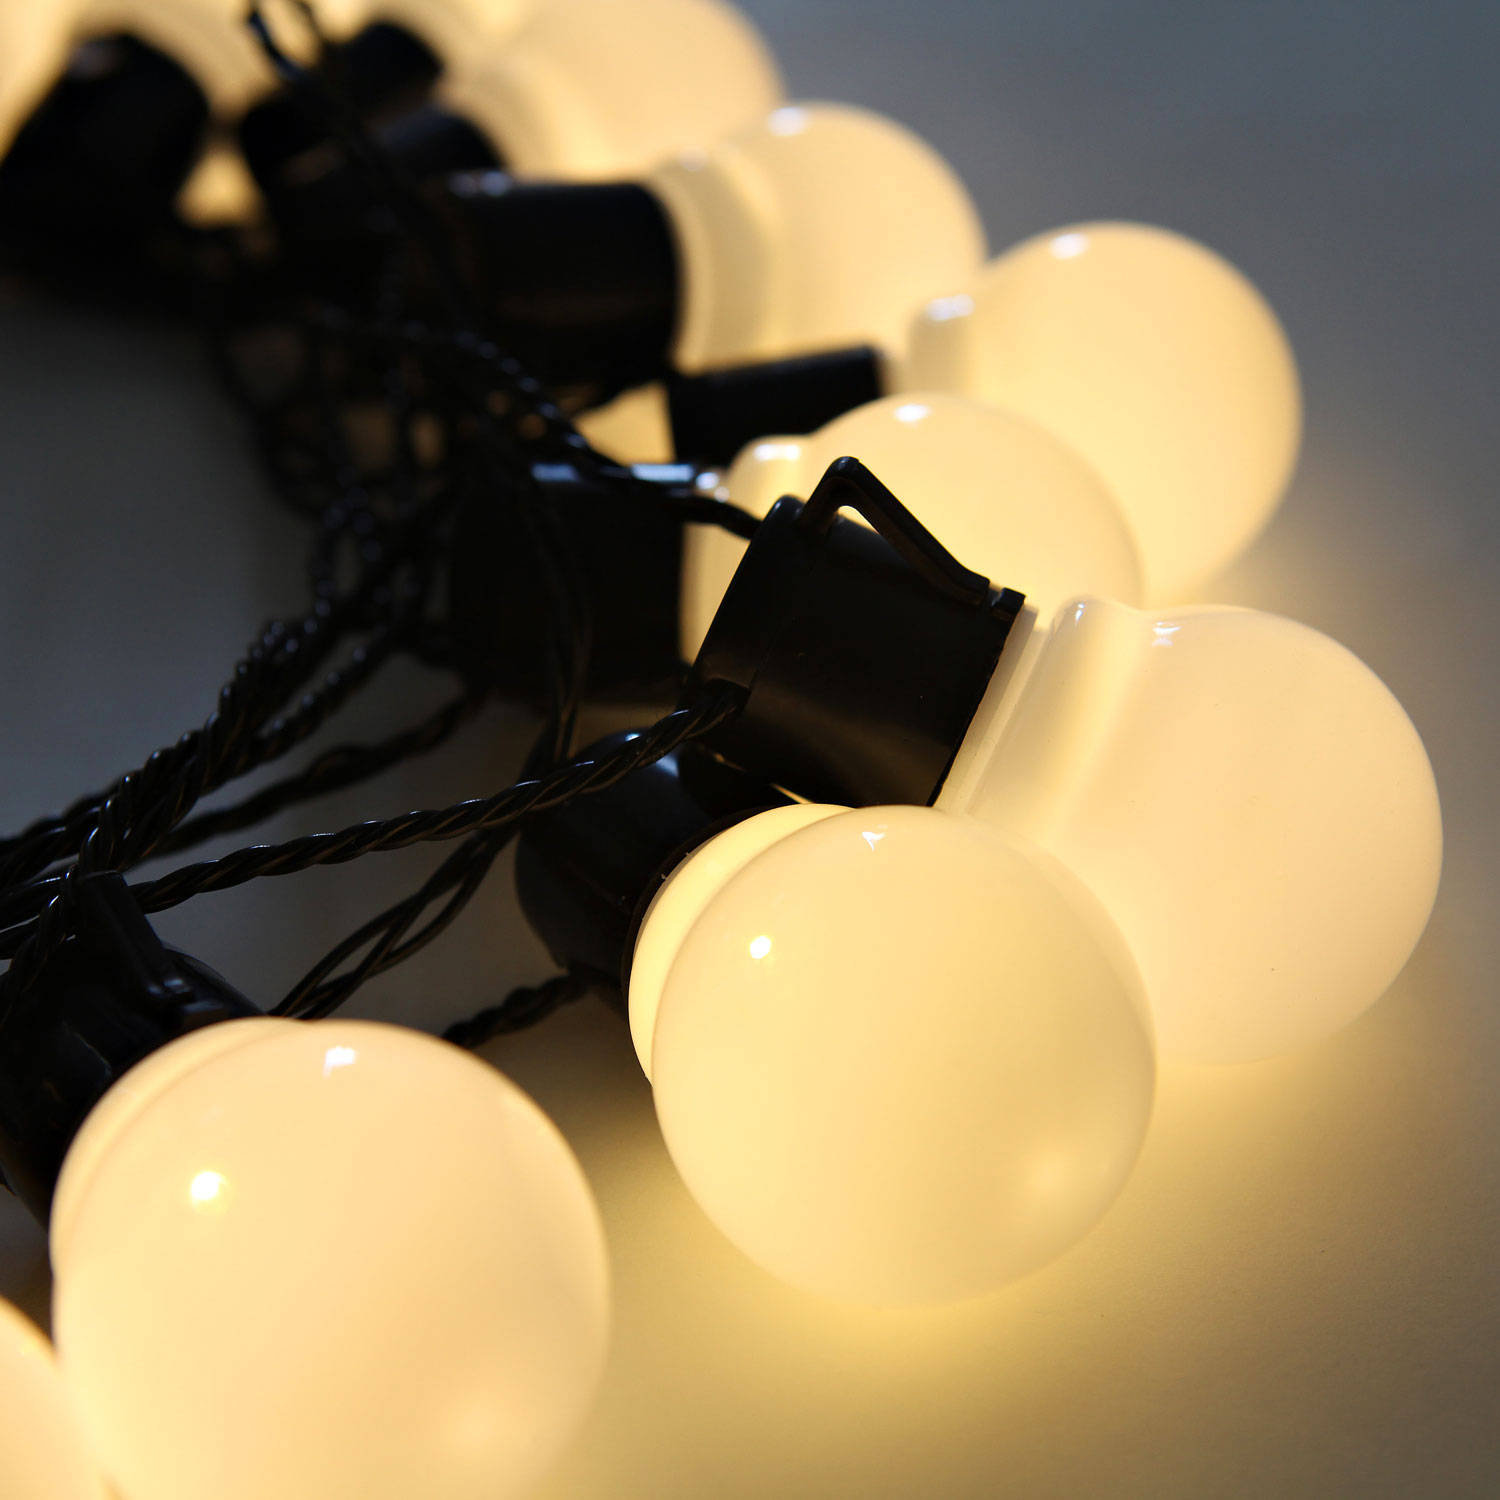 Lights.com String Lights Decorative String Lights White Globe Connectable Plug-in Festoon ...